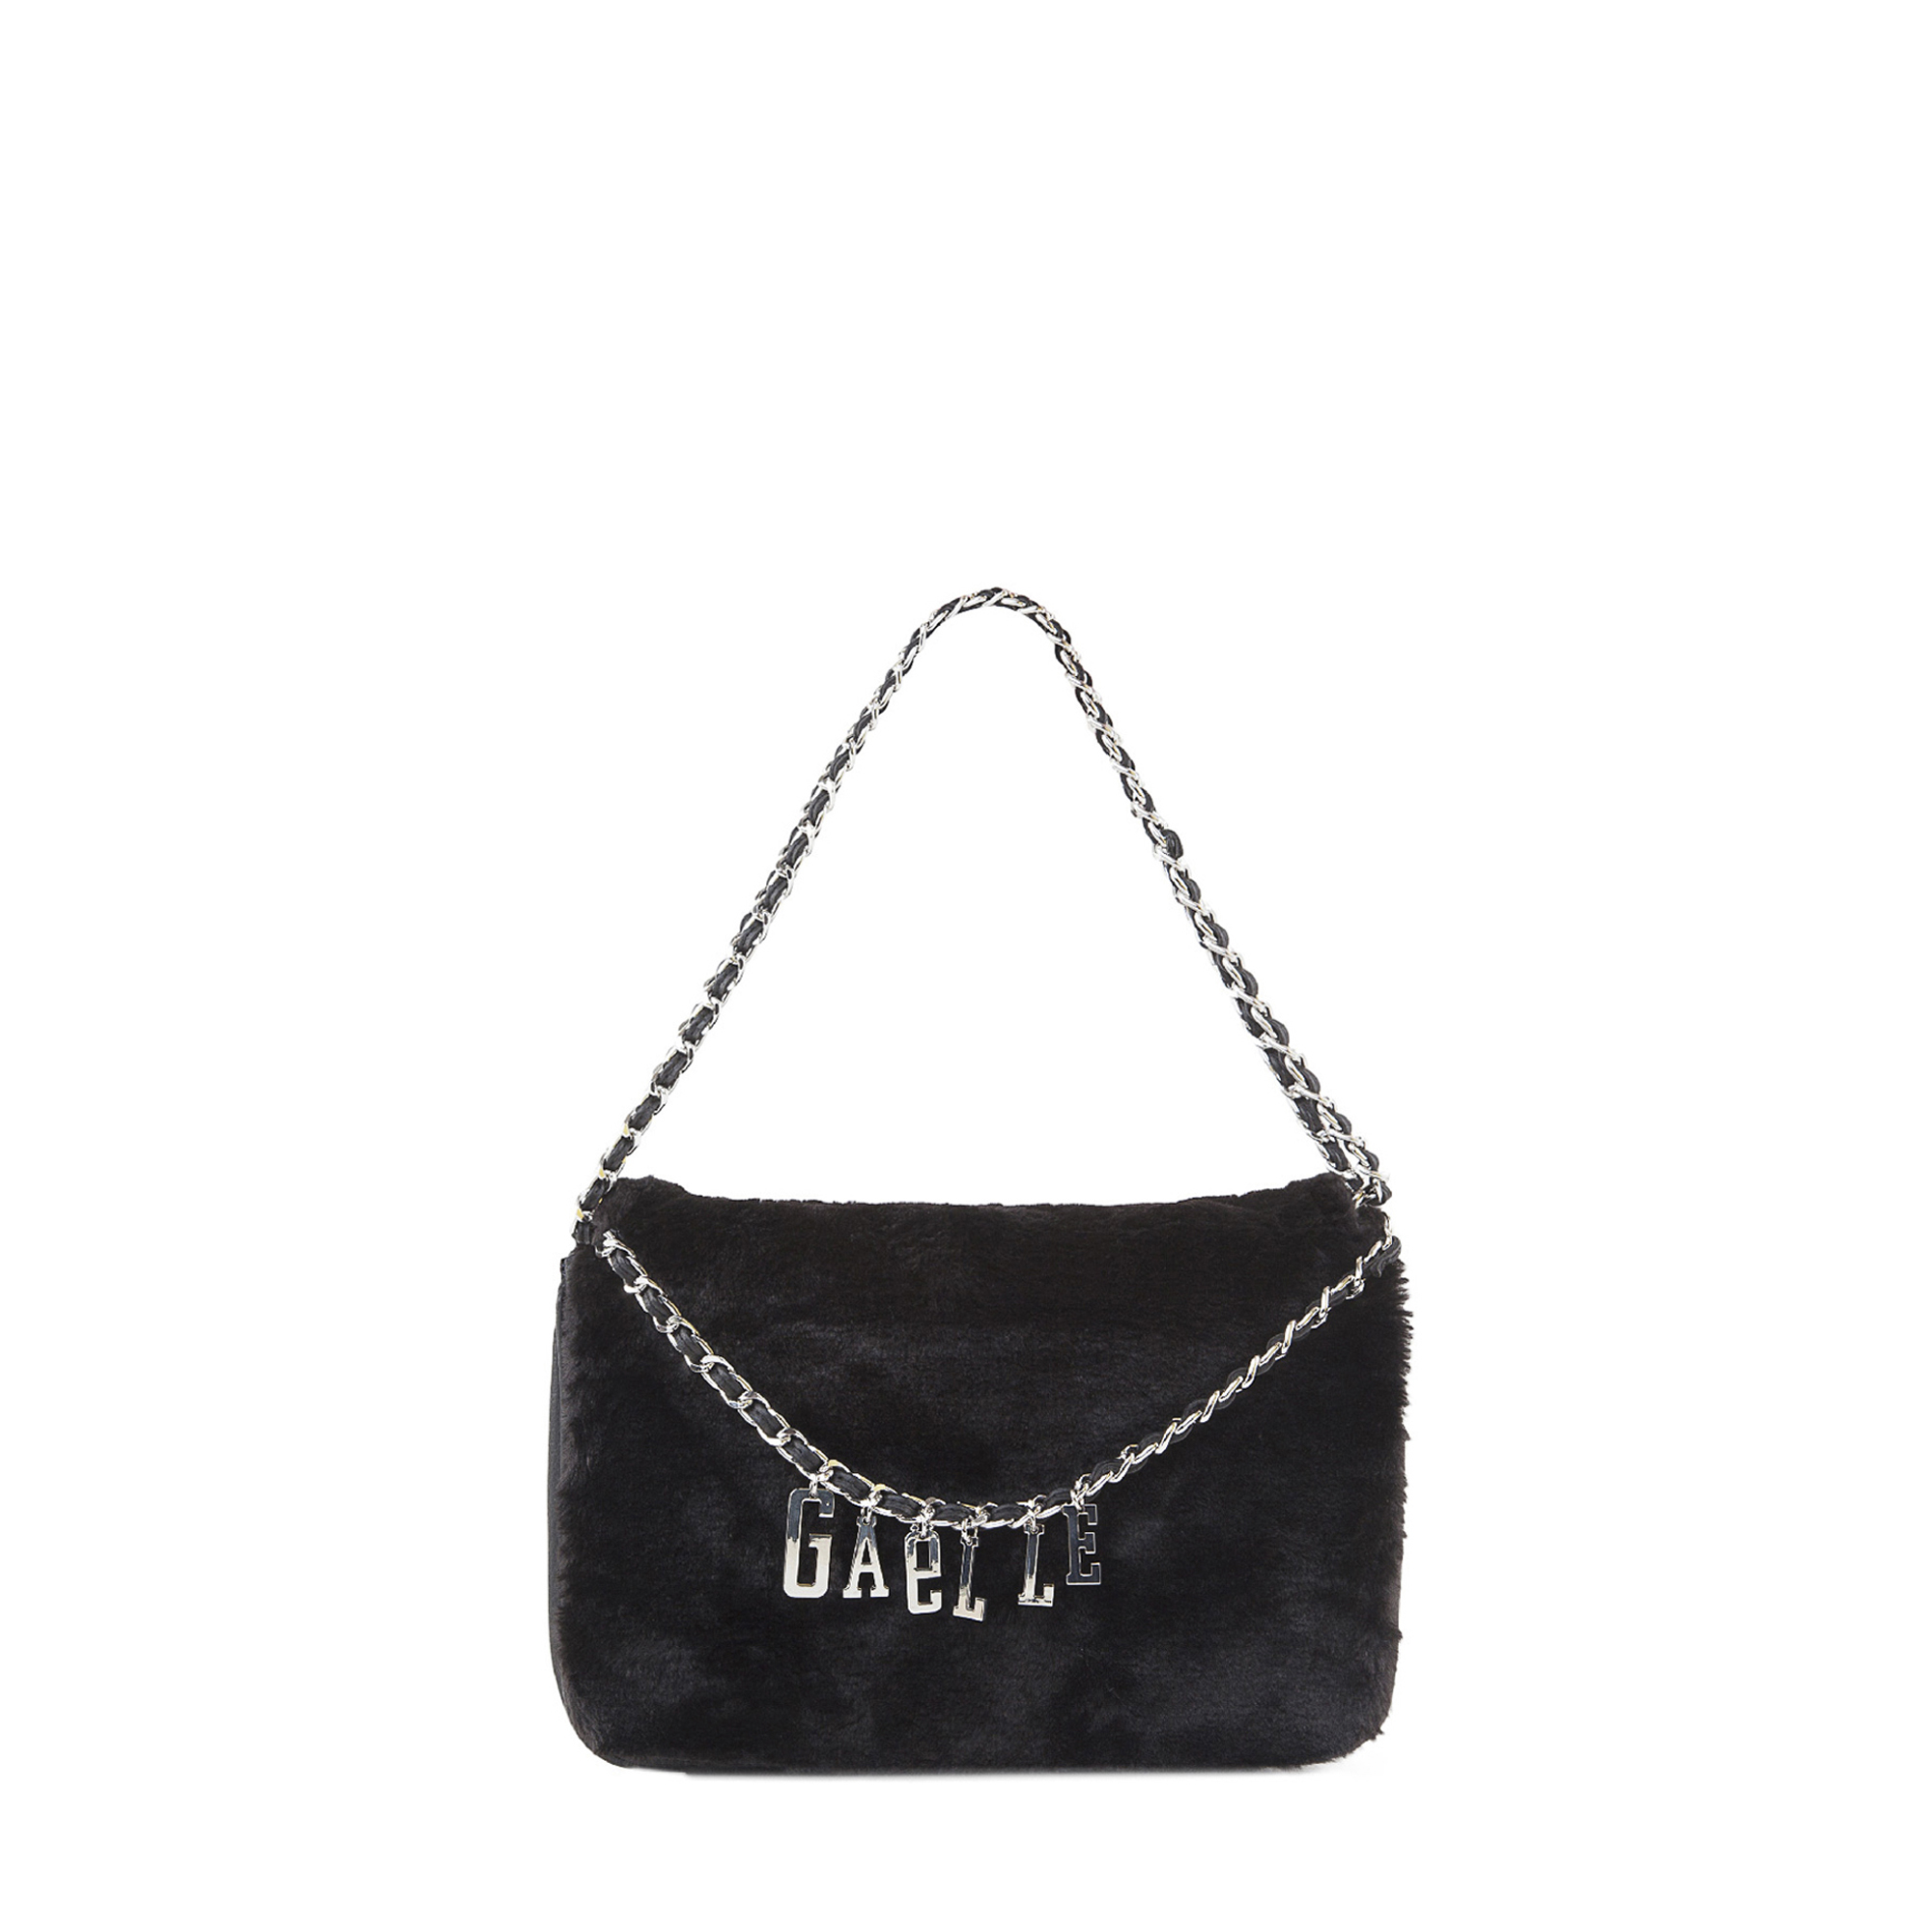 BAG - GBDA1052A - GAELLE PARIS